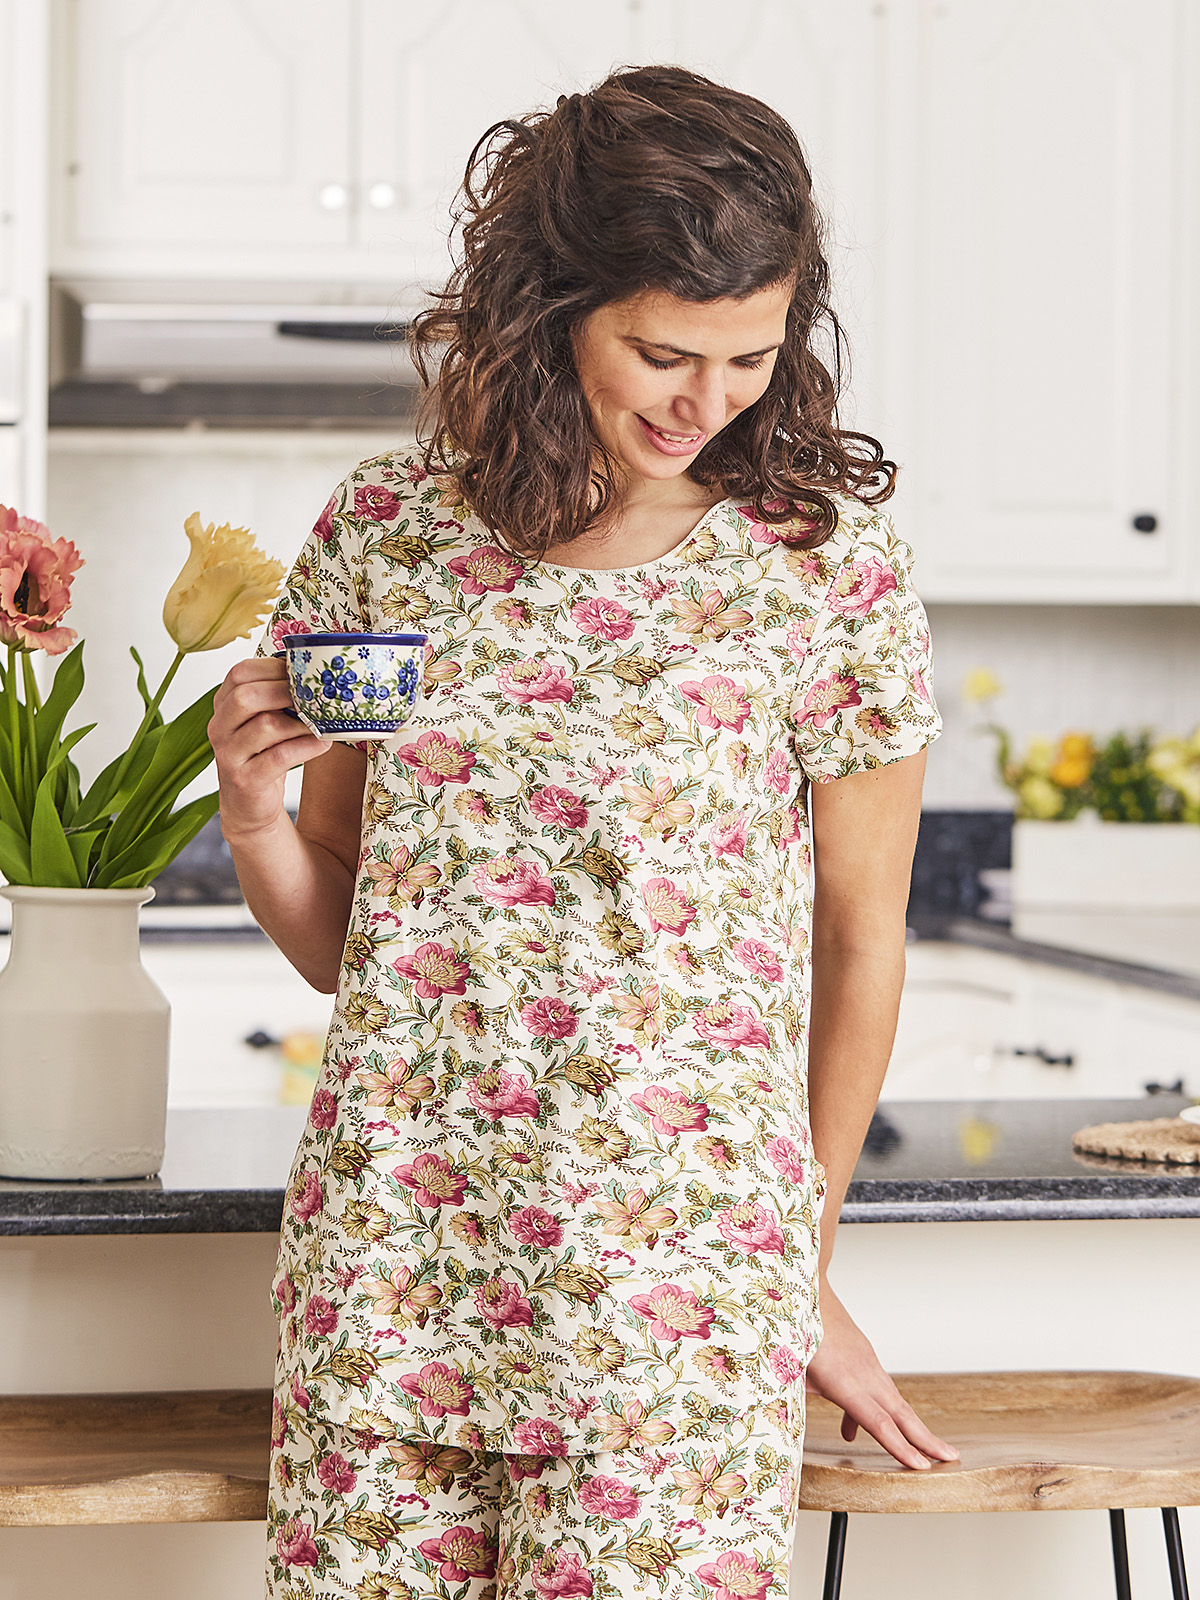 Woman holding a coffee in the kitchen.